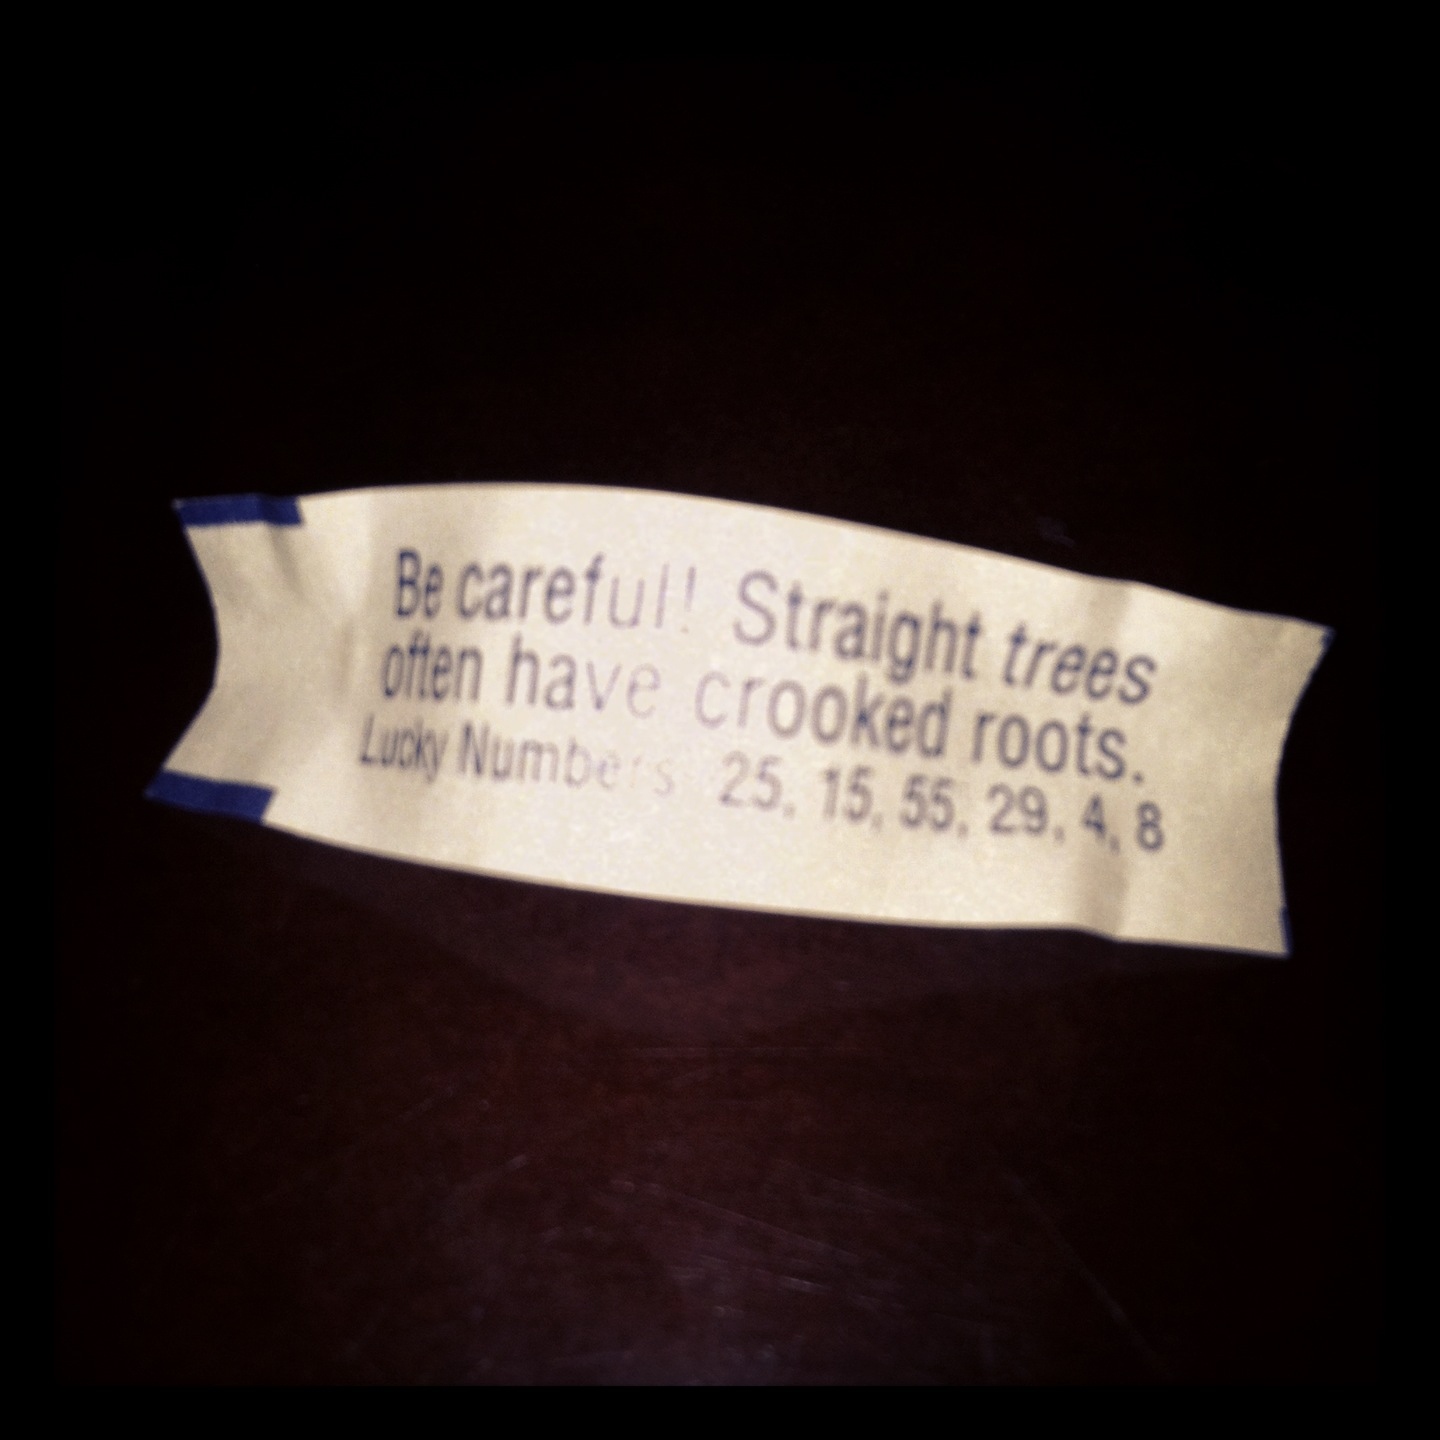 Best Friend Quotes In Chinese: Fortune Cookie Quotes About Friendship. QuotesGram